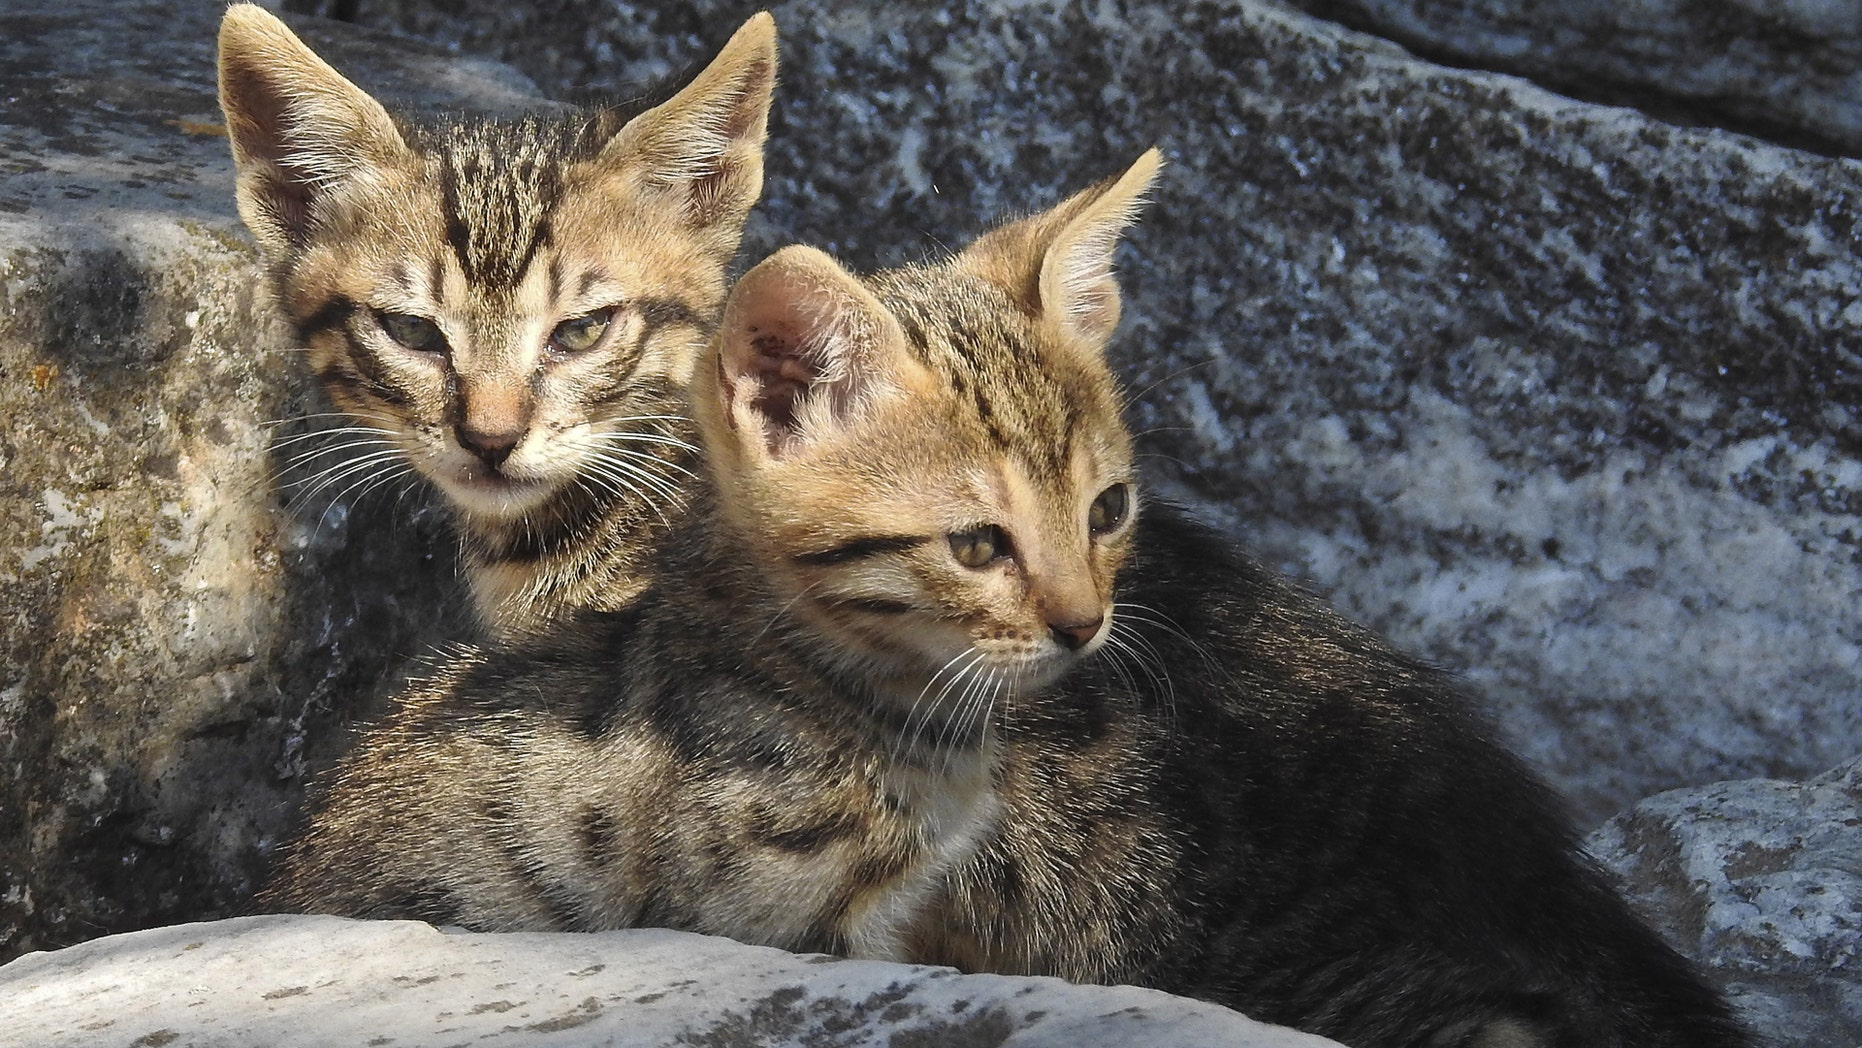 Australia is being over run by cats that are murdering 1 million birds every day. Two kittens lie in the ruins of the ancient Agora in Athens June 20, 2015. (REUTERS/Paul Hanna)